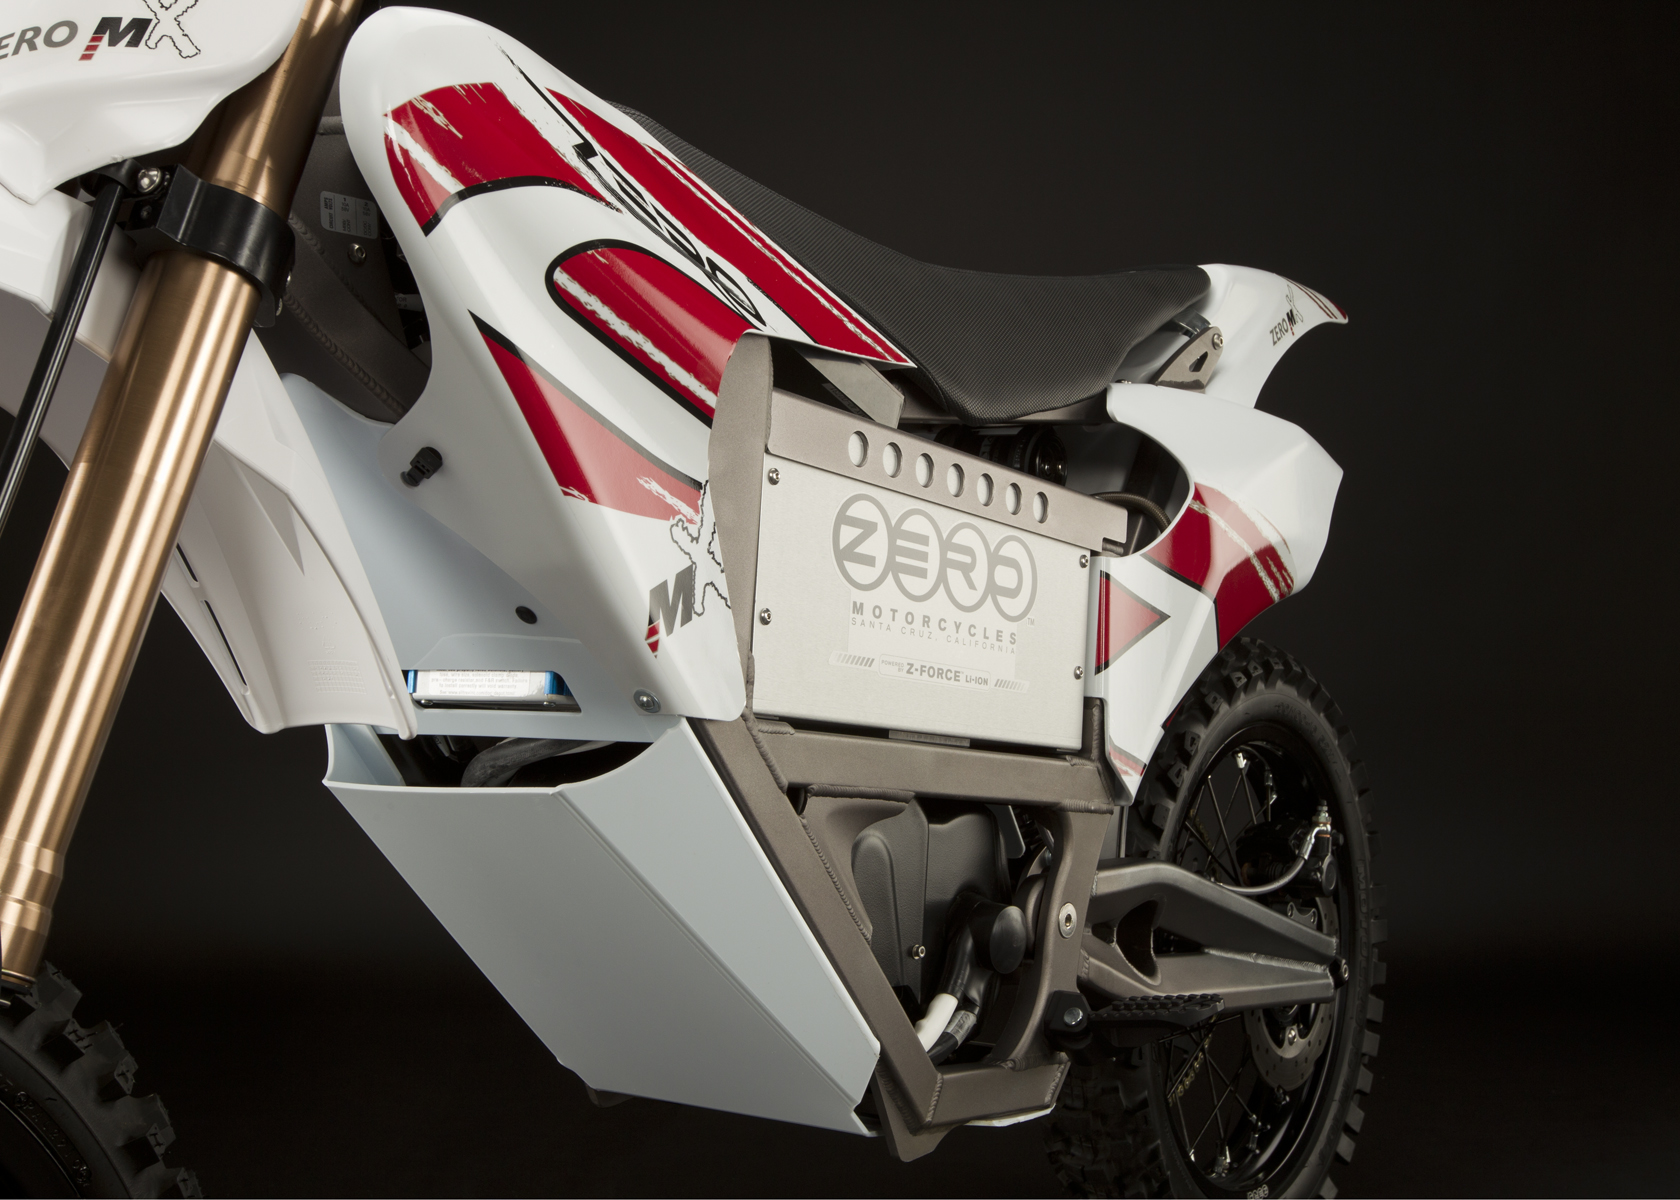 '.2011 Zero MX Electric Motorcycle: Battery.'